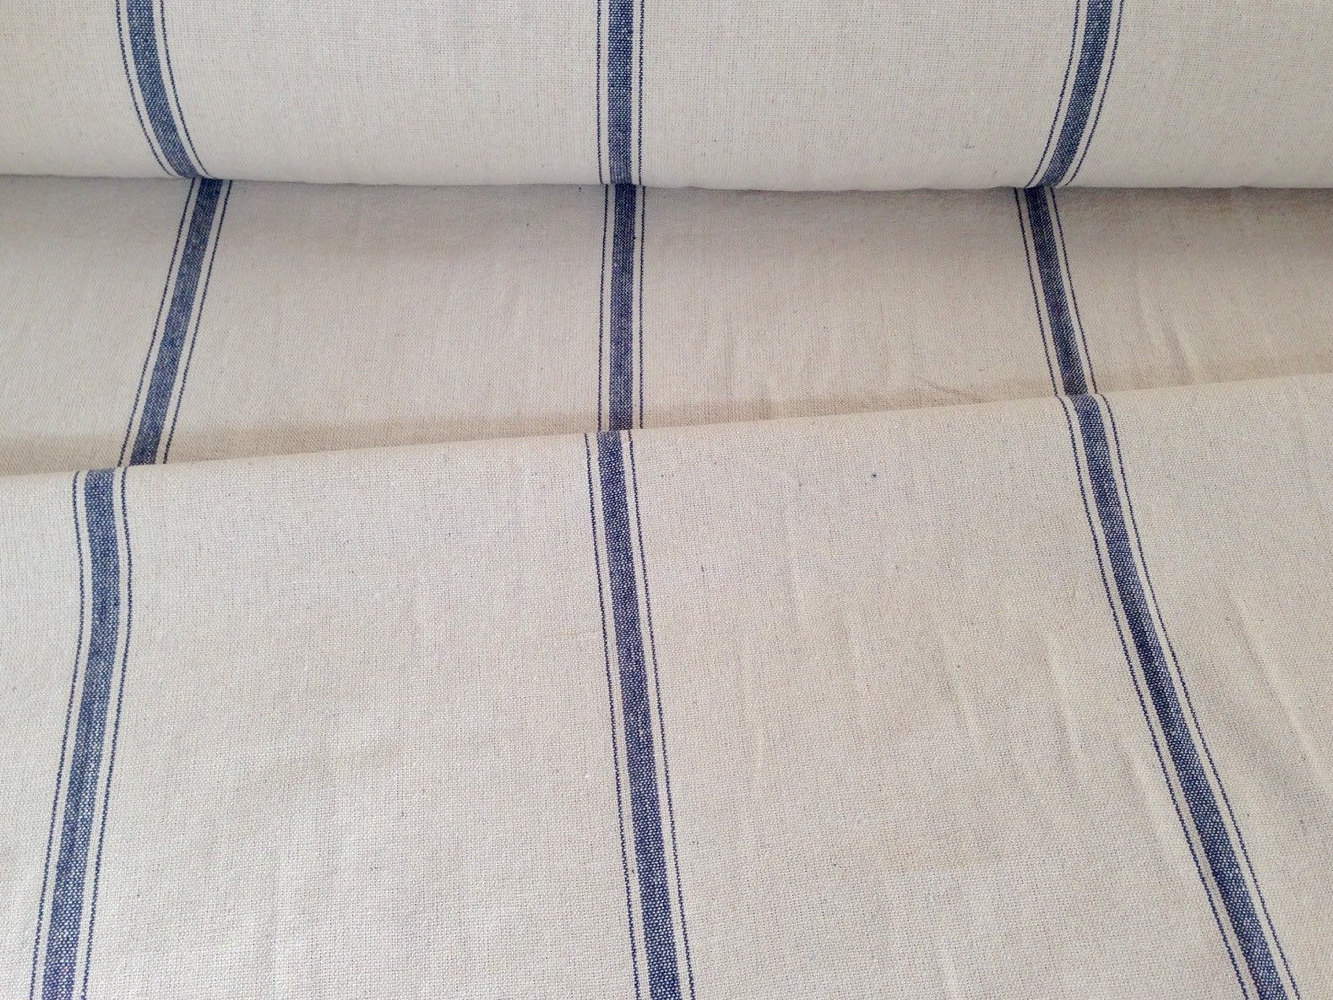 Flour Sack Fabric By The Yard Grain Sack Fabric Sold By The Yard Blue Stripe Vintage Etsy